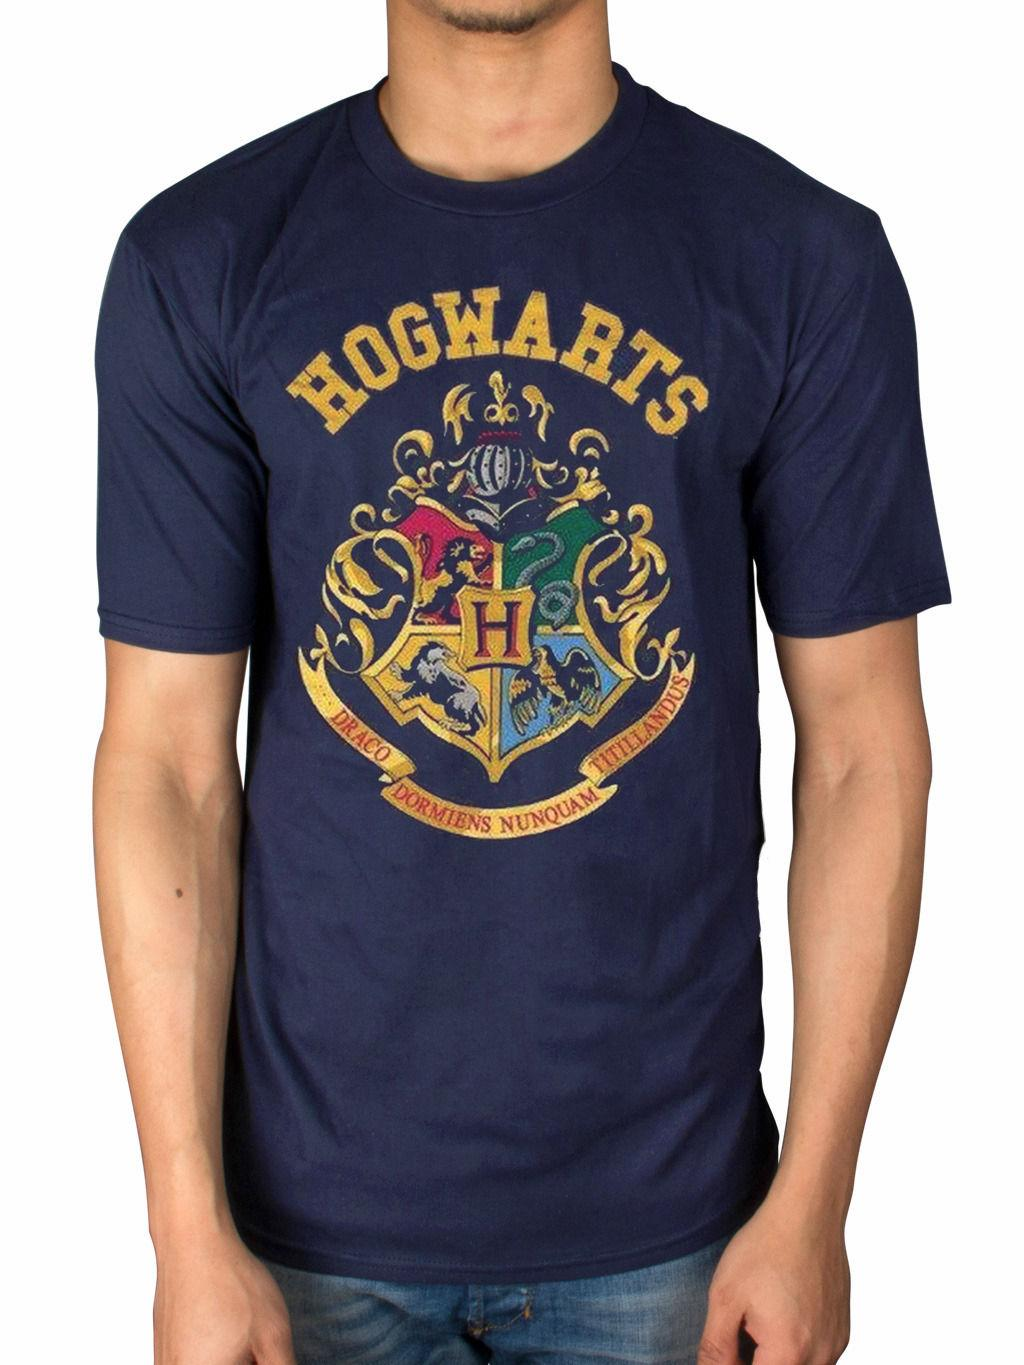 a3dc9f3c Official Harry Potter Hogwarts Crest T Shirt Hogwarts Hermione Granger Book  TVFunny Unisex Casual Tshirt Top Print On Tee Shirt Go T Shirts From ...